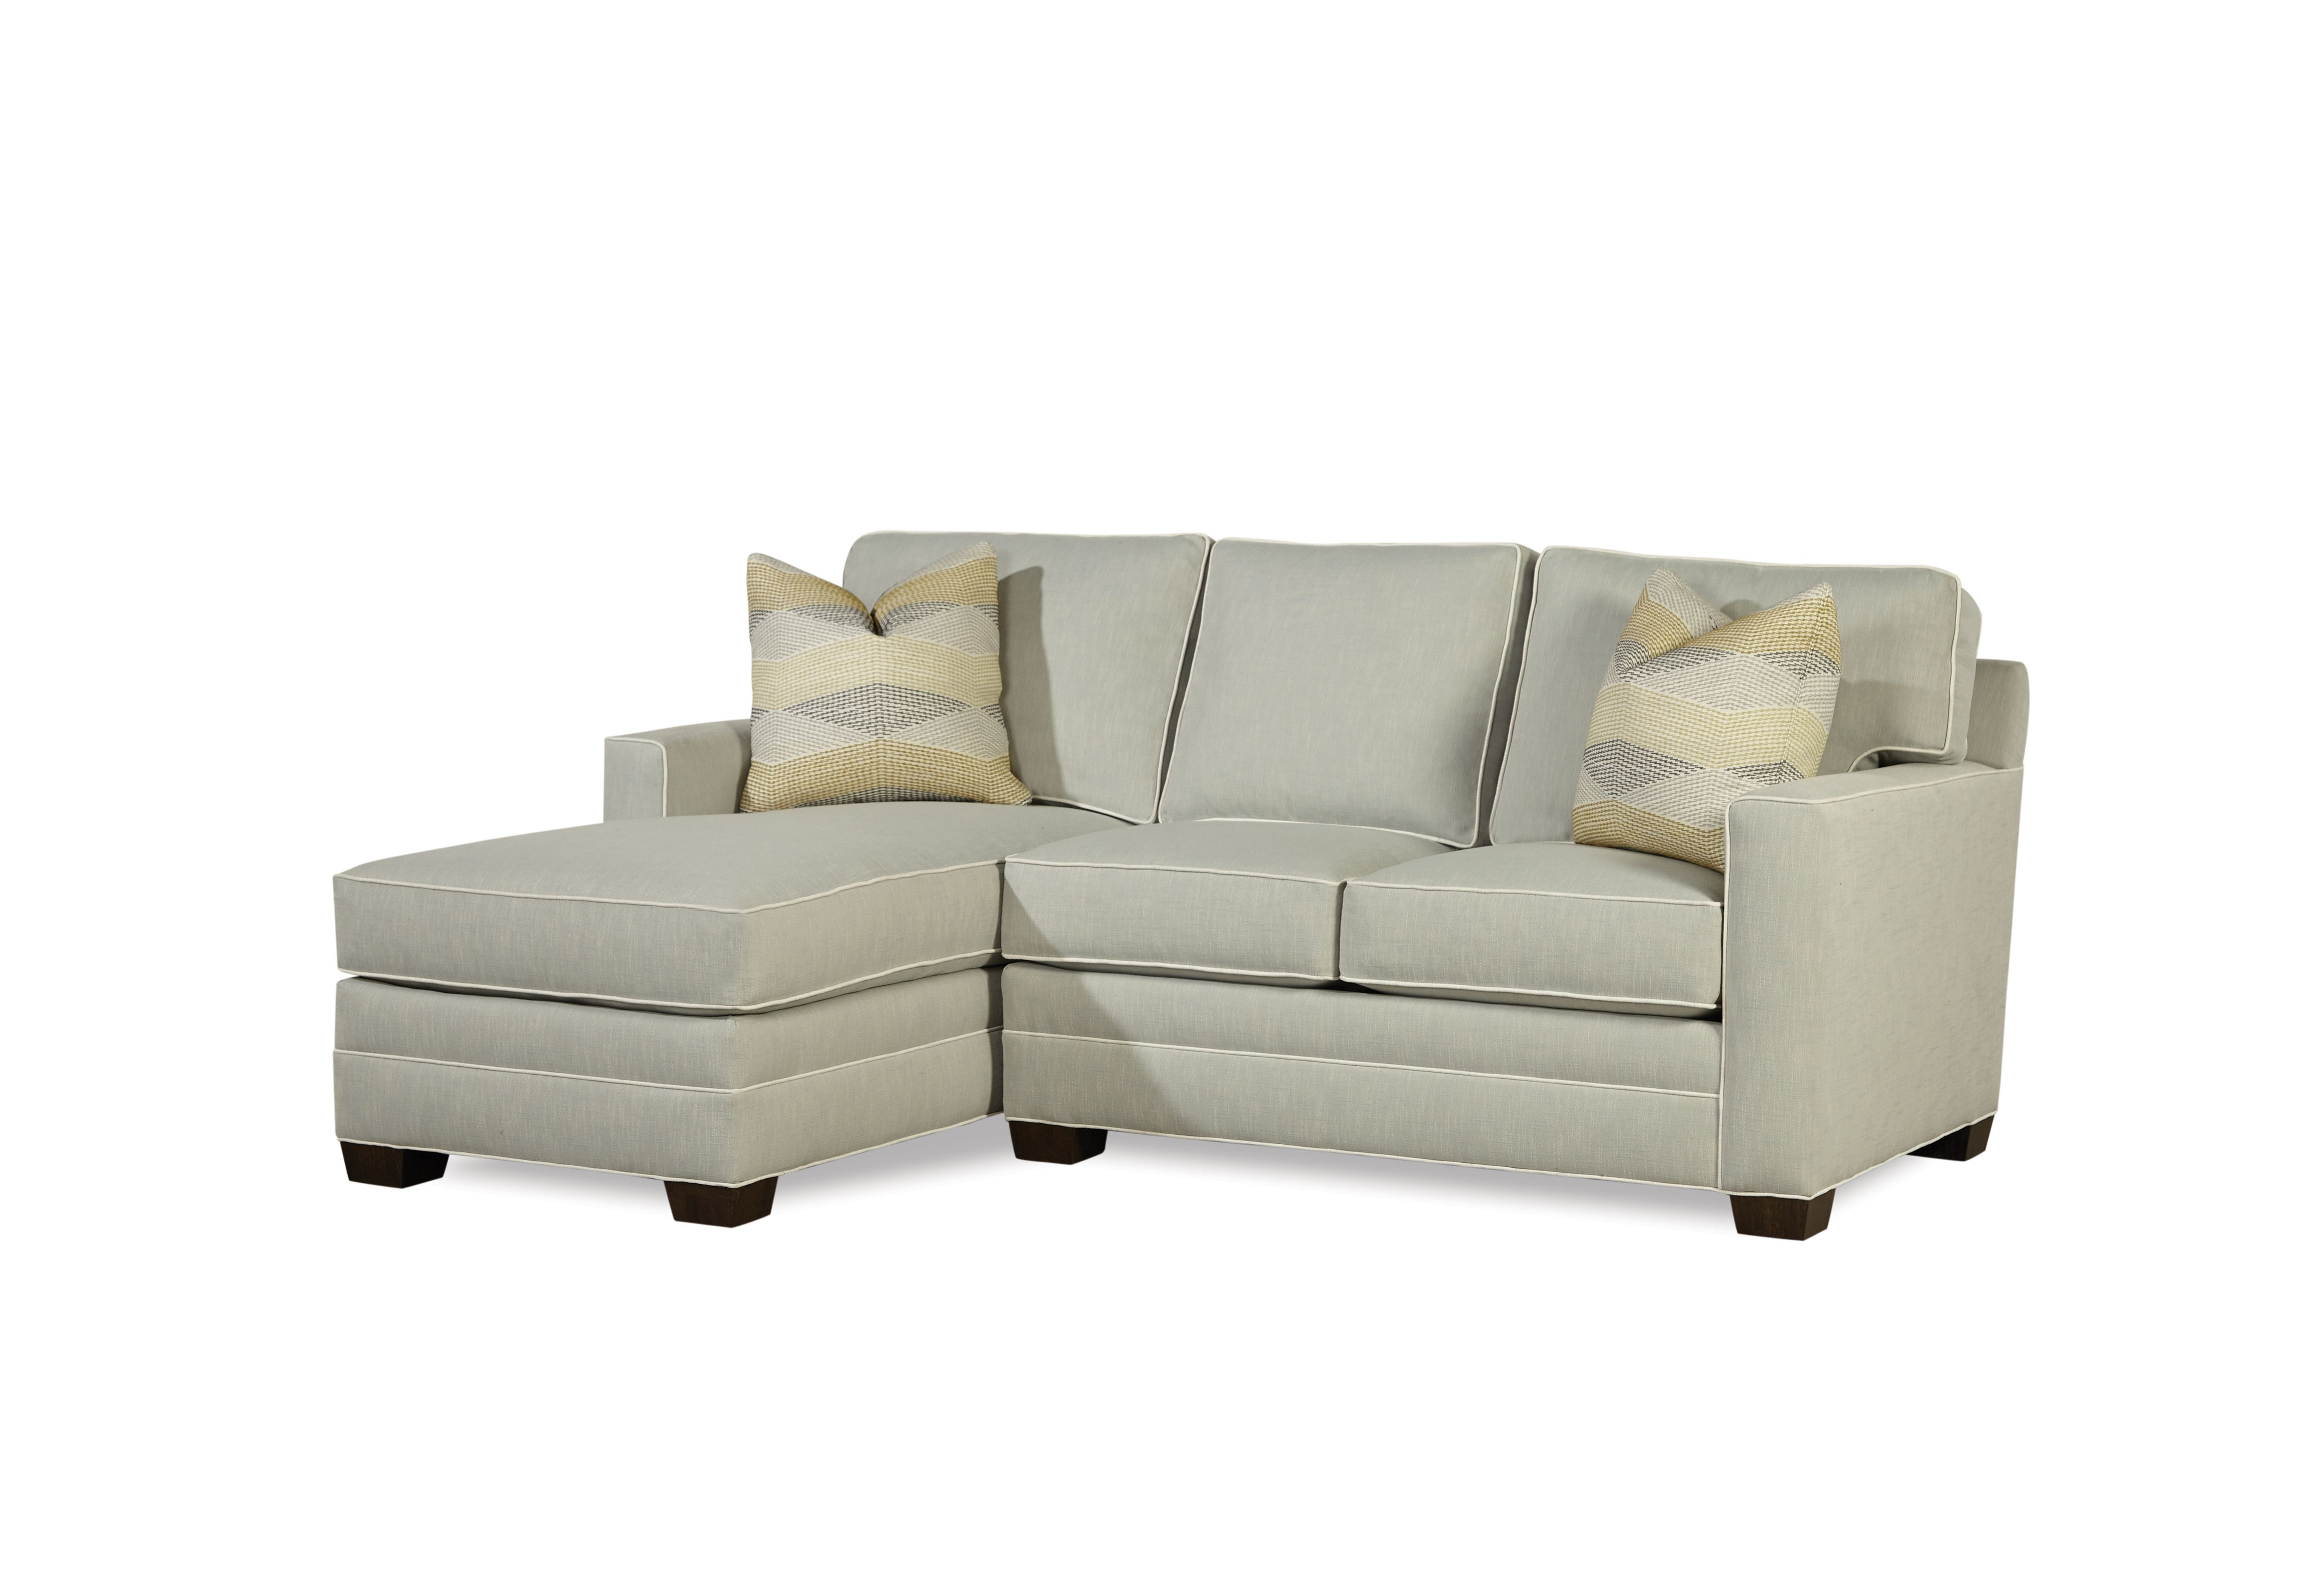 Huntington House 2053 Sectional Shown In Crypton Home Fabric In Sectional Sofas At Birmingham Al (View 4 of 15)